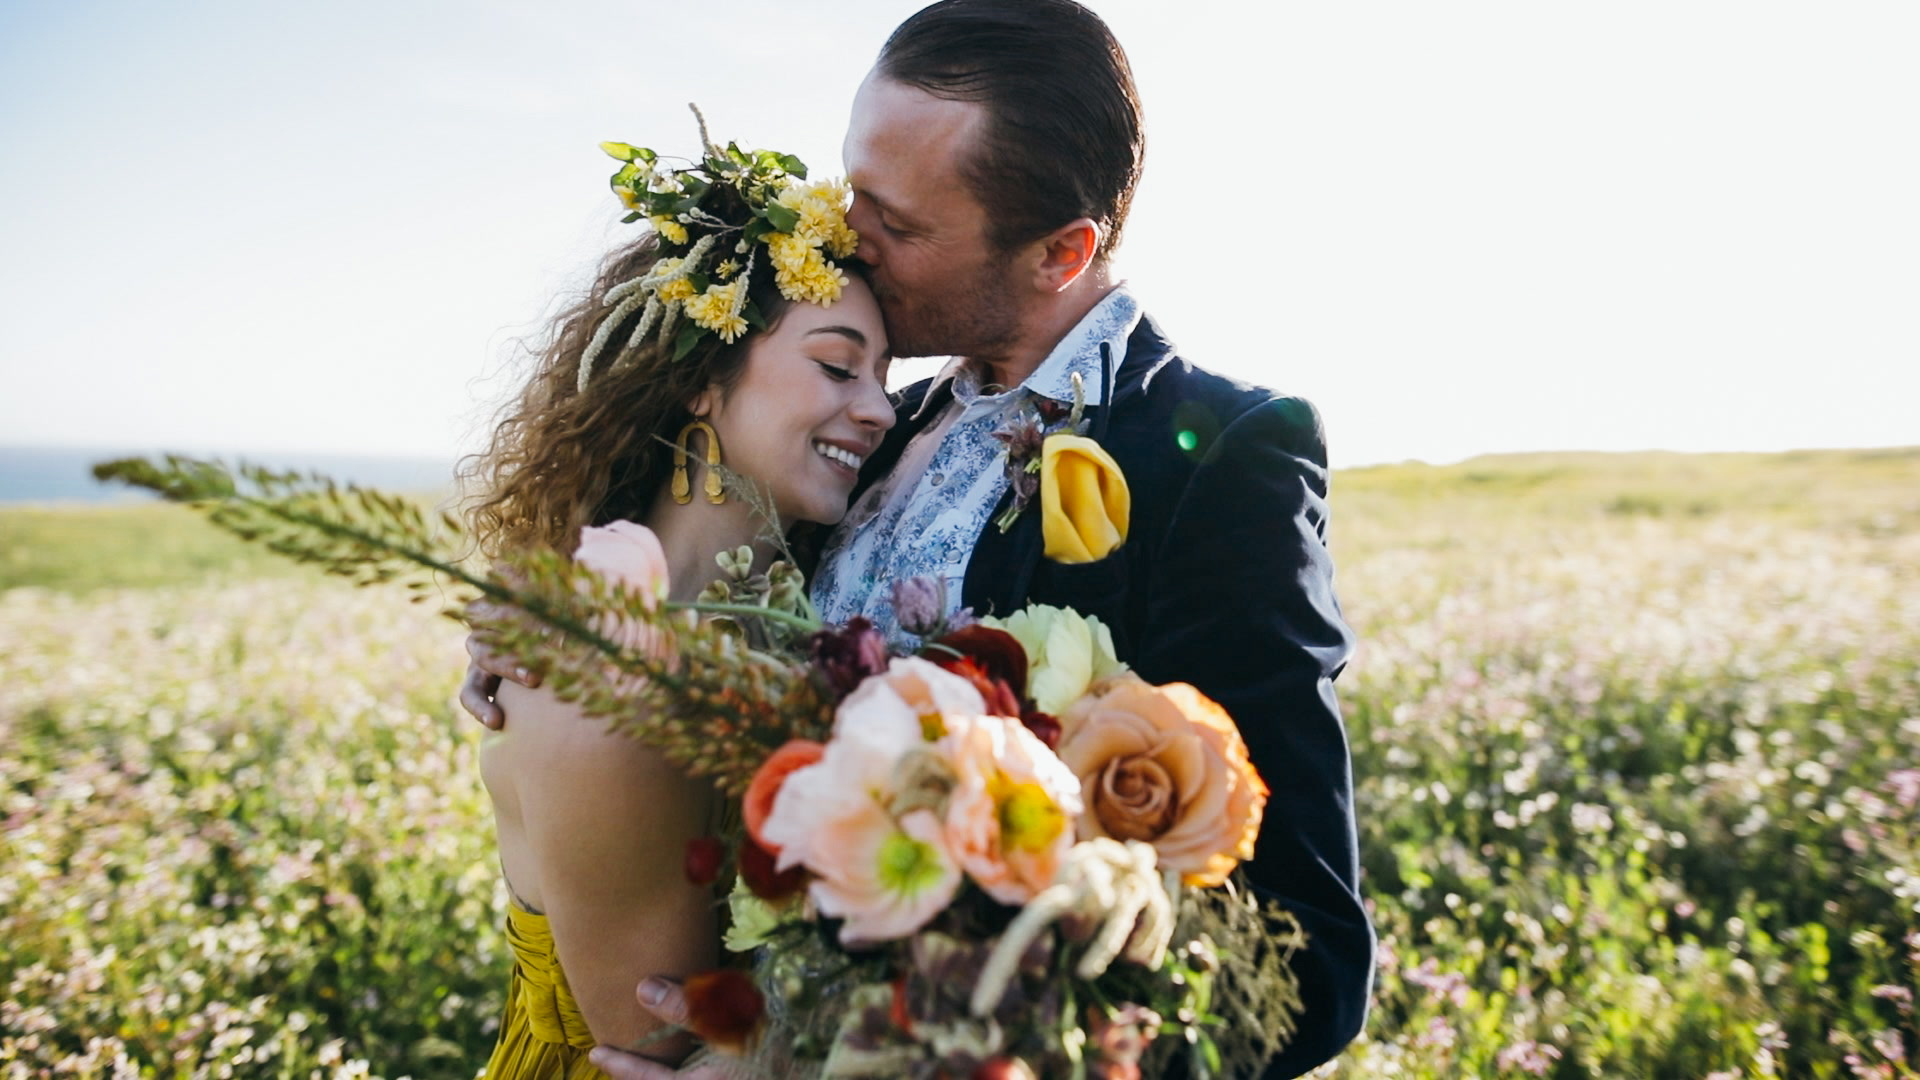 Kiira + Stevee | Santa Cruz, California | a beach